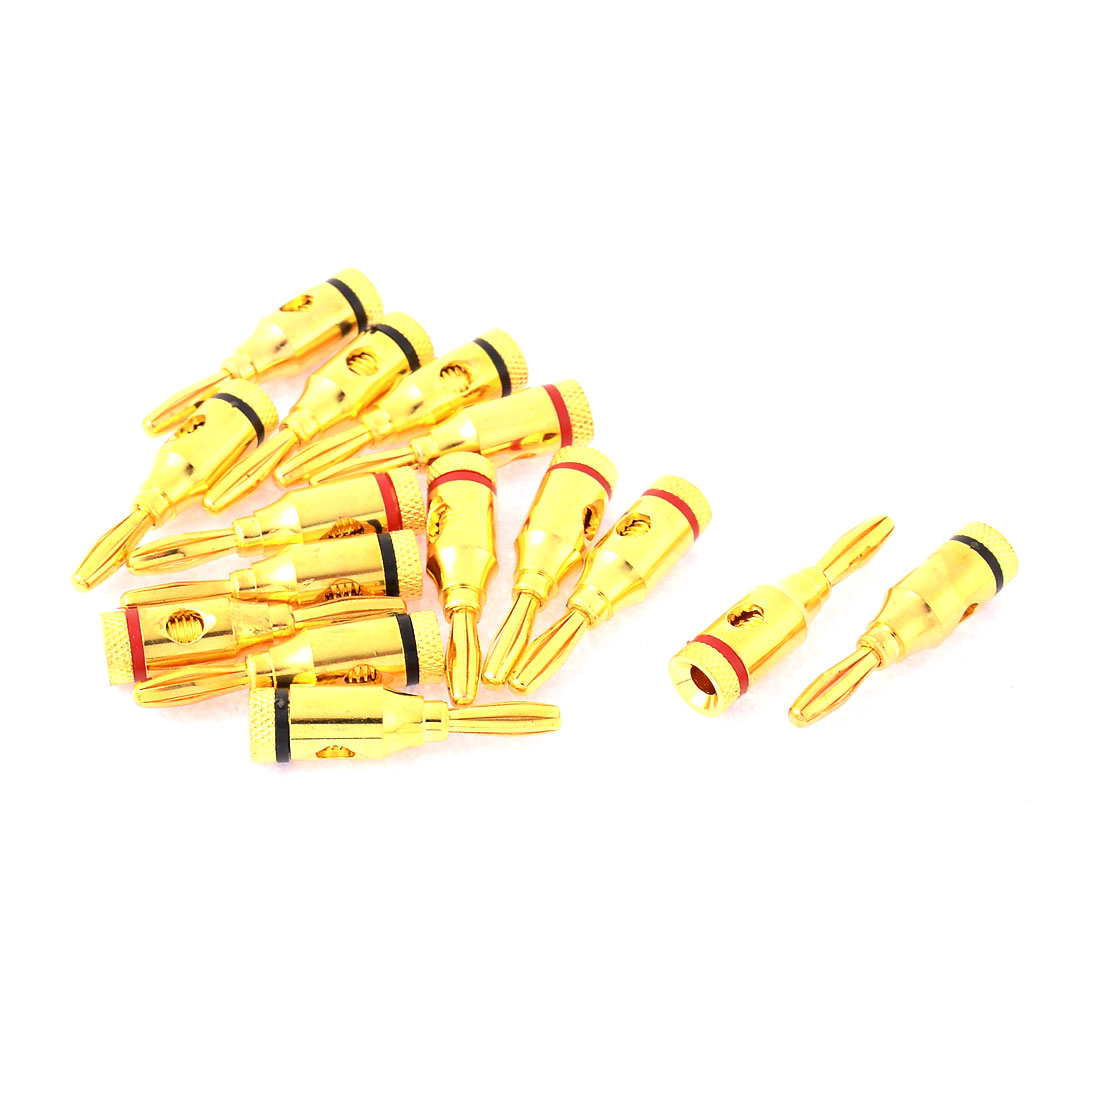 15pcs Metal Female Thread Type Audio Speaker Cable Banana Connector Converter